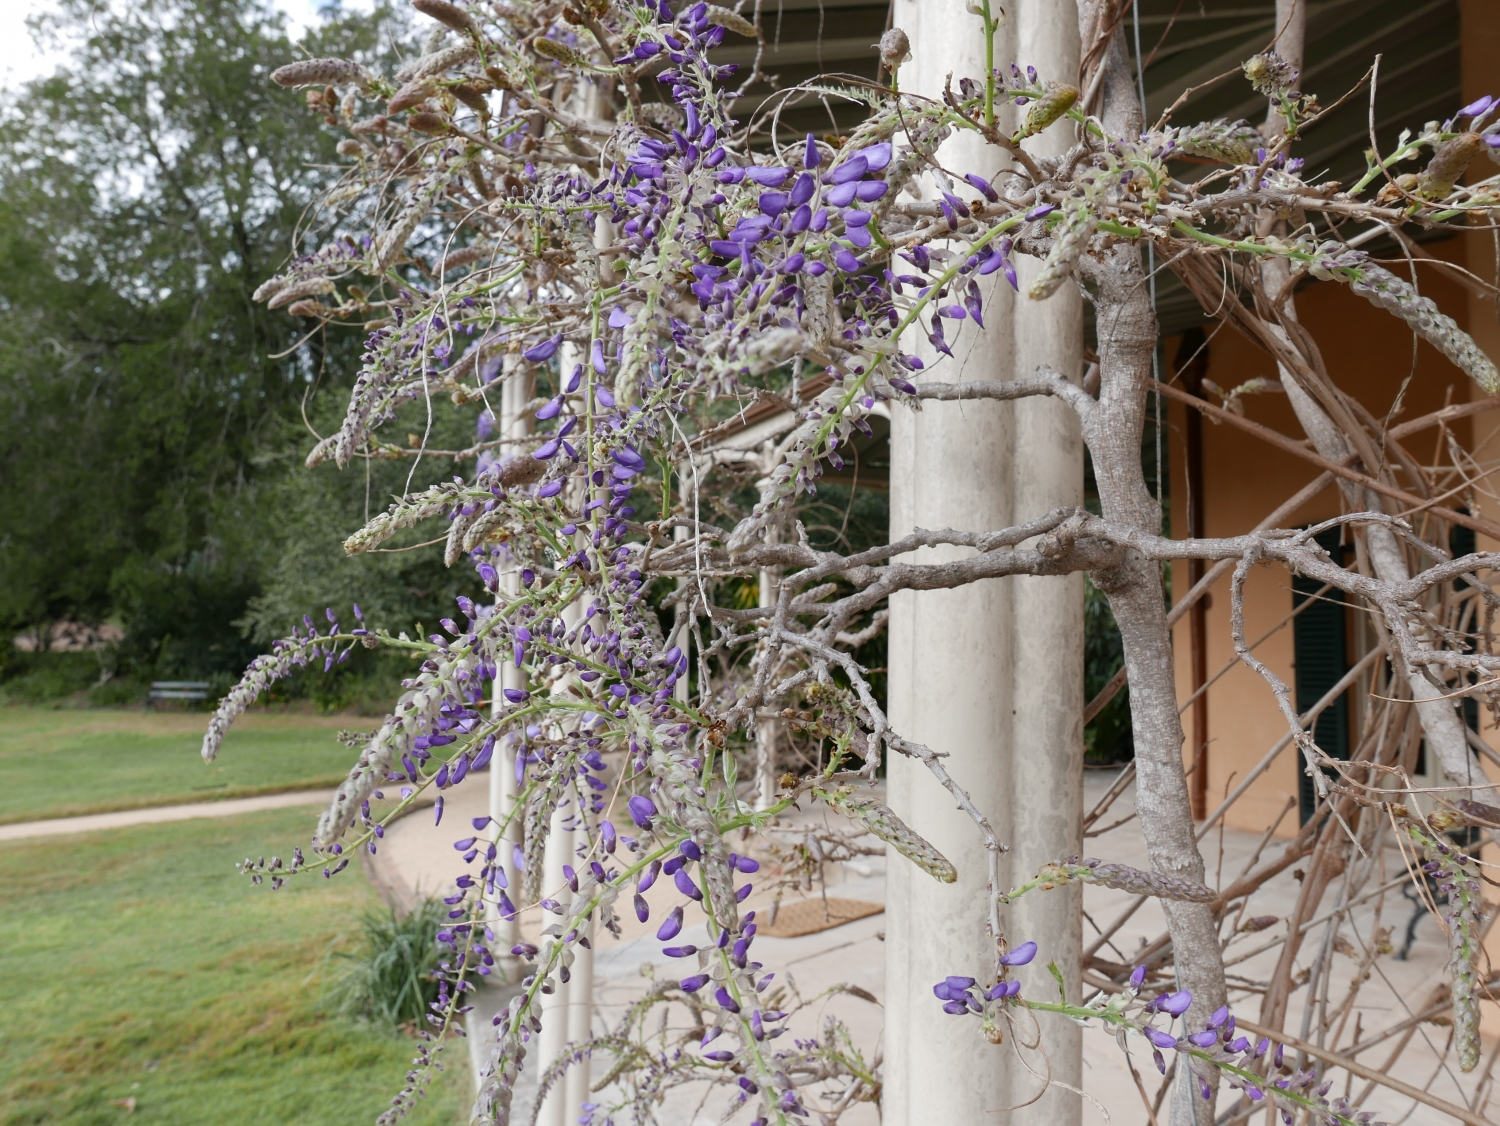 The Wisteria buds at Vaucluse House begin to open